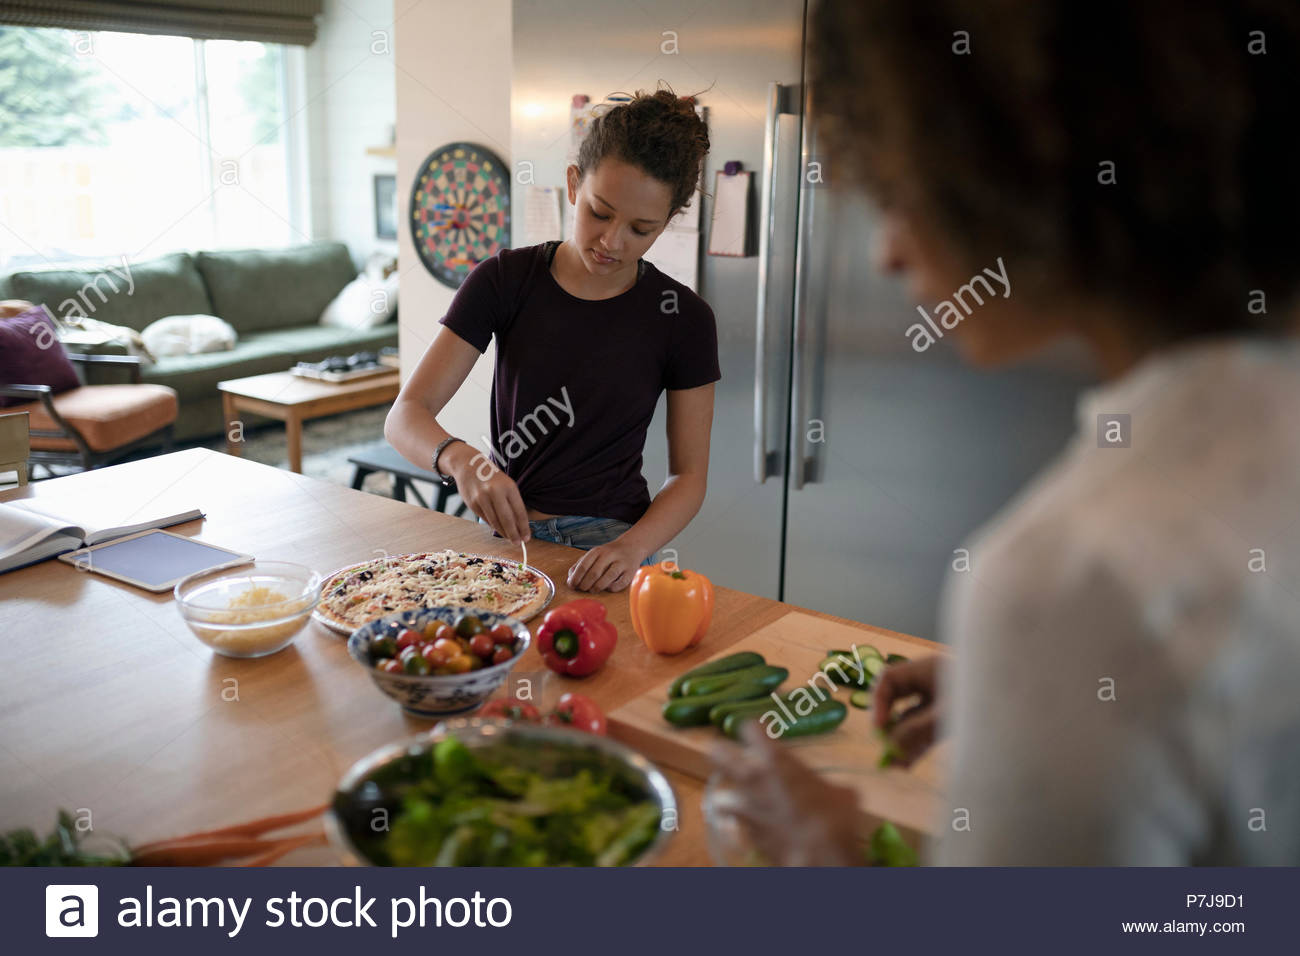 Mother and daughter cooking, preparing vegetables and pizza in kitchen - Stock Image